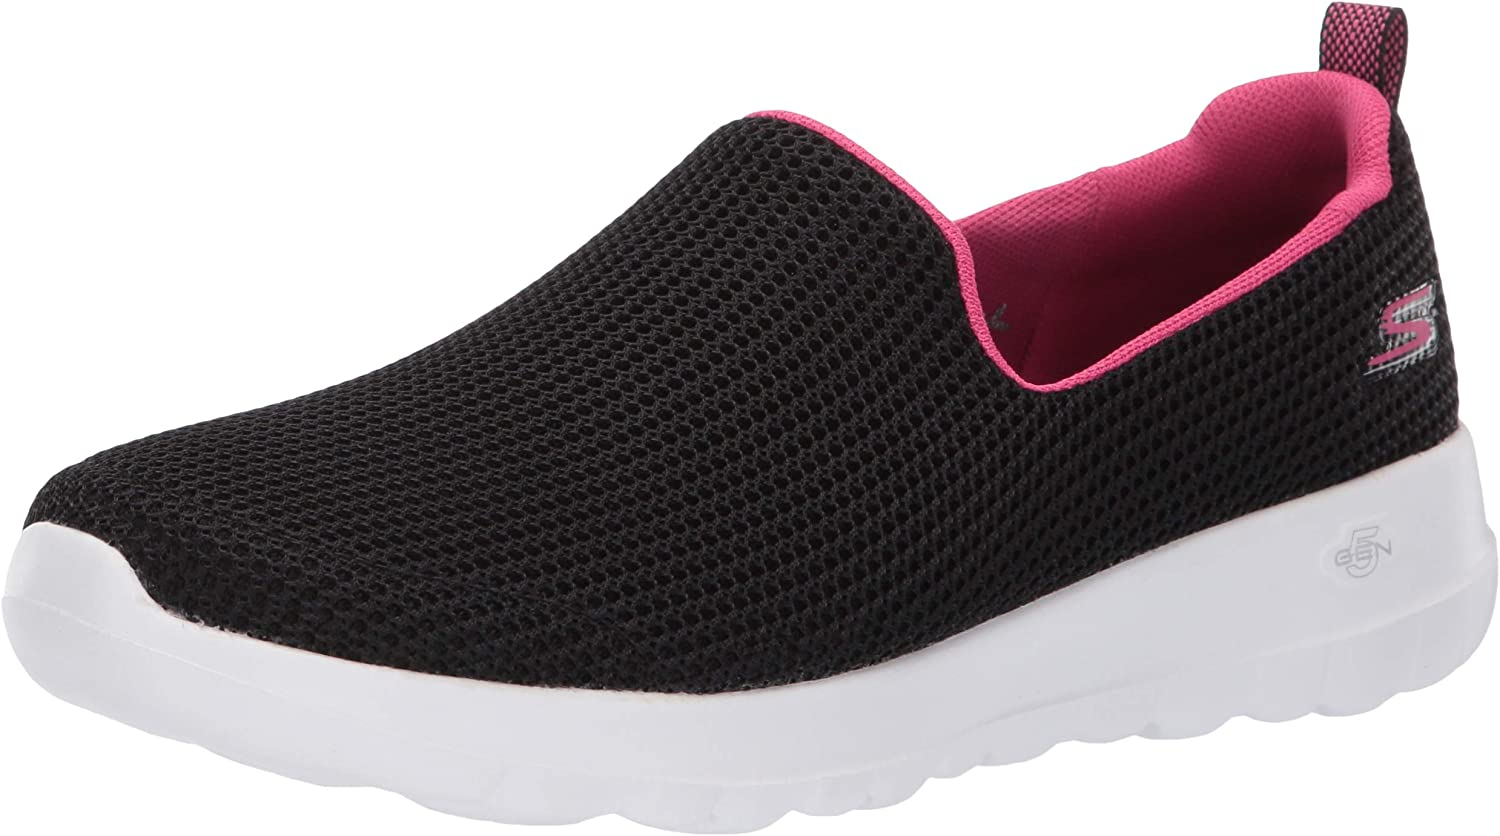 Top 10 Skechers Go Walk 5 Miracle